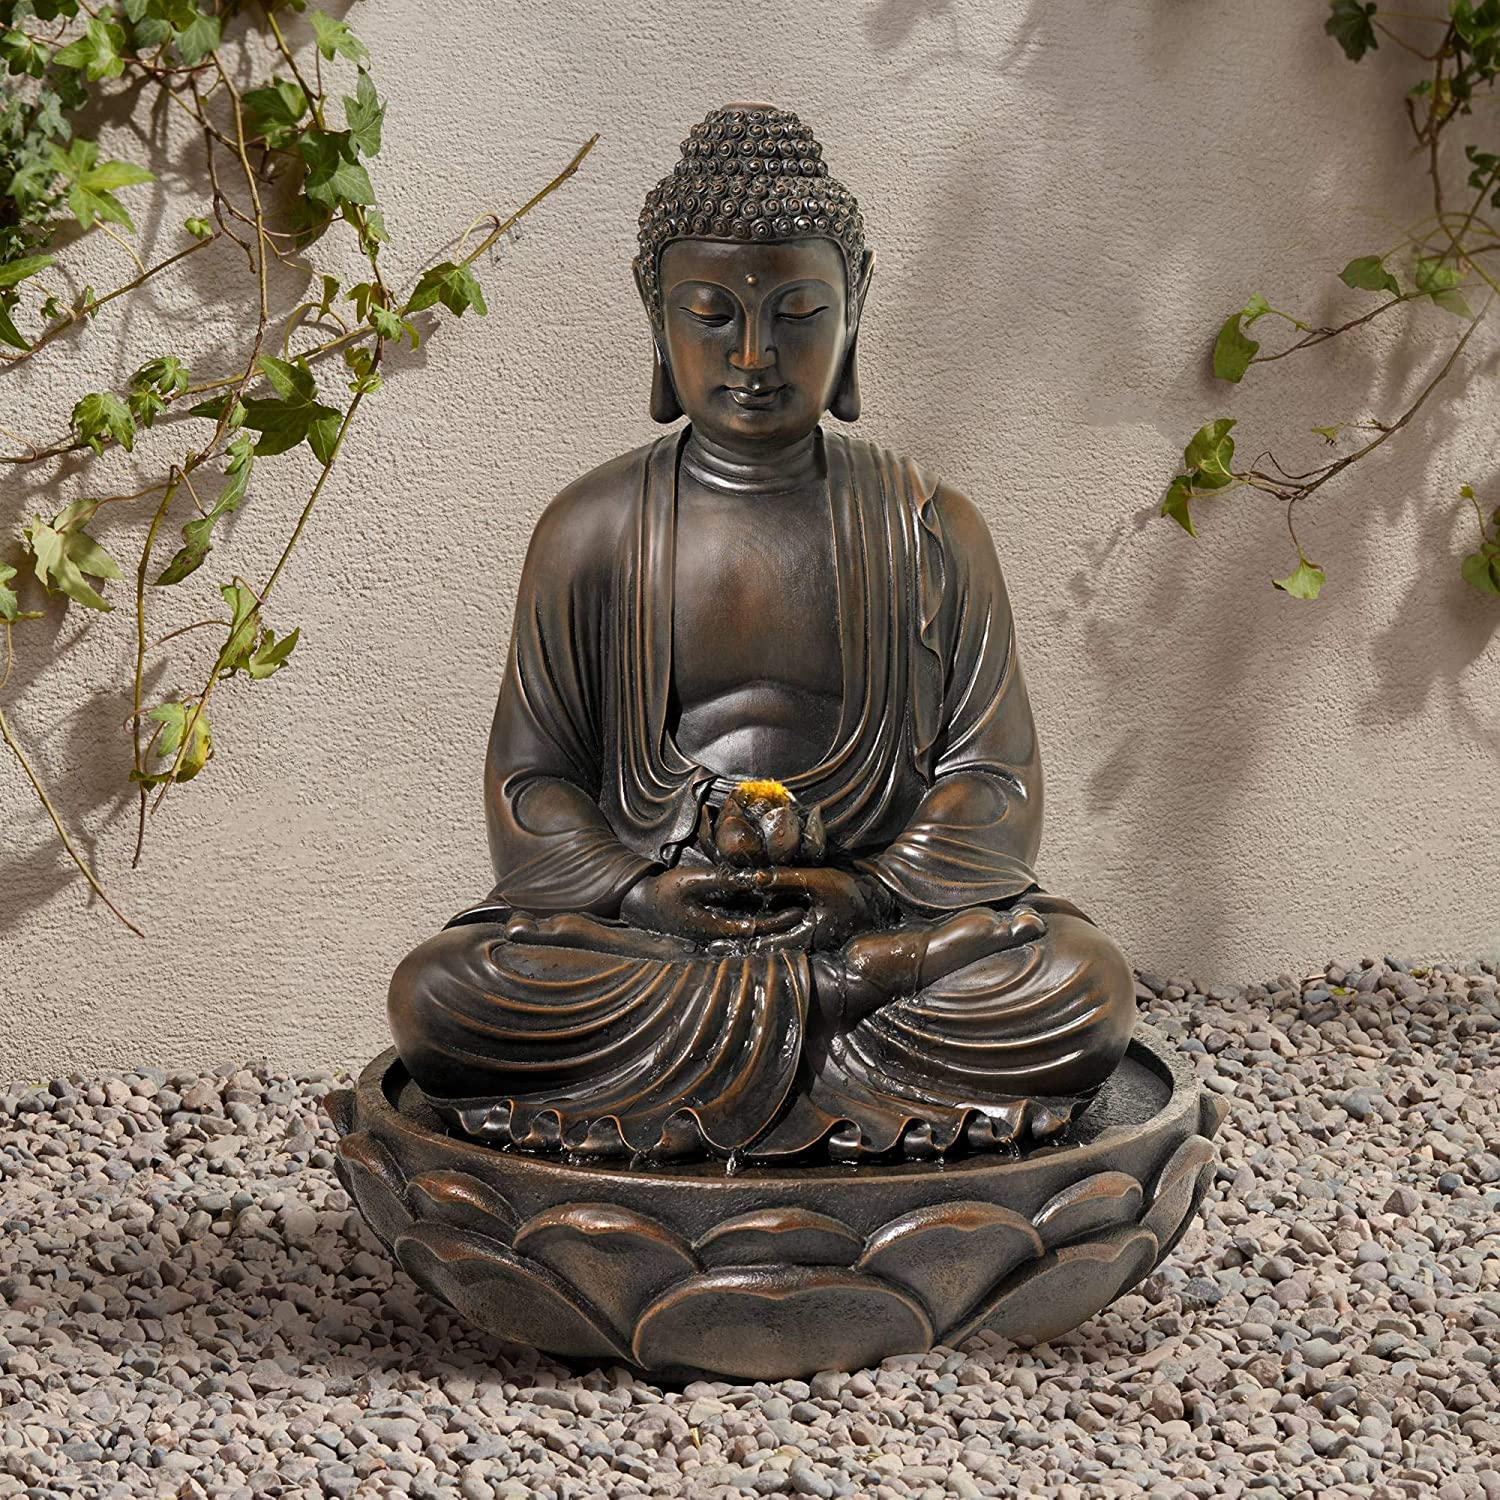 John Timberland Meditating Asian Zen Buddha Outdoor Water Fountain with Light LED 27 1/2